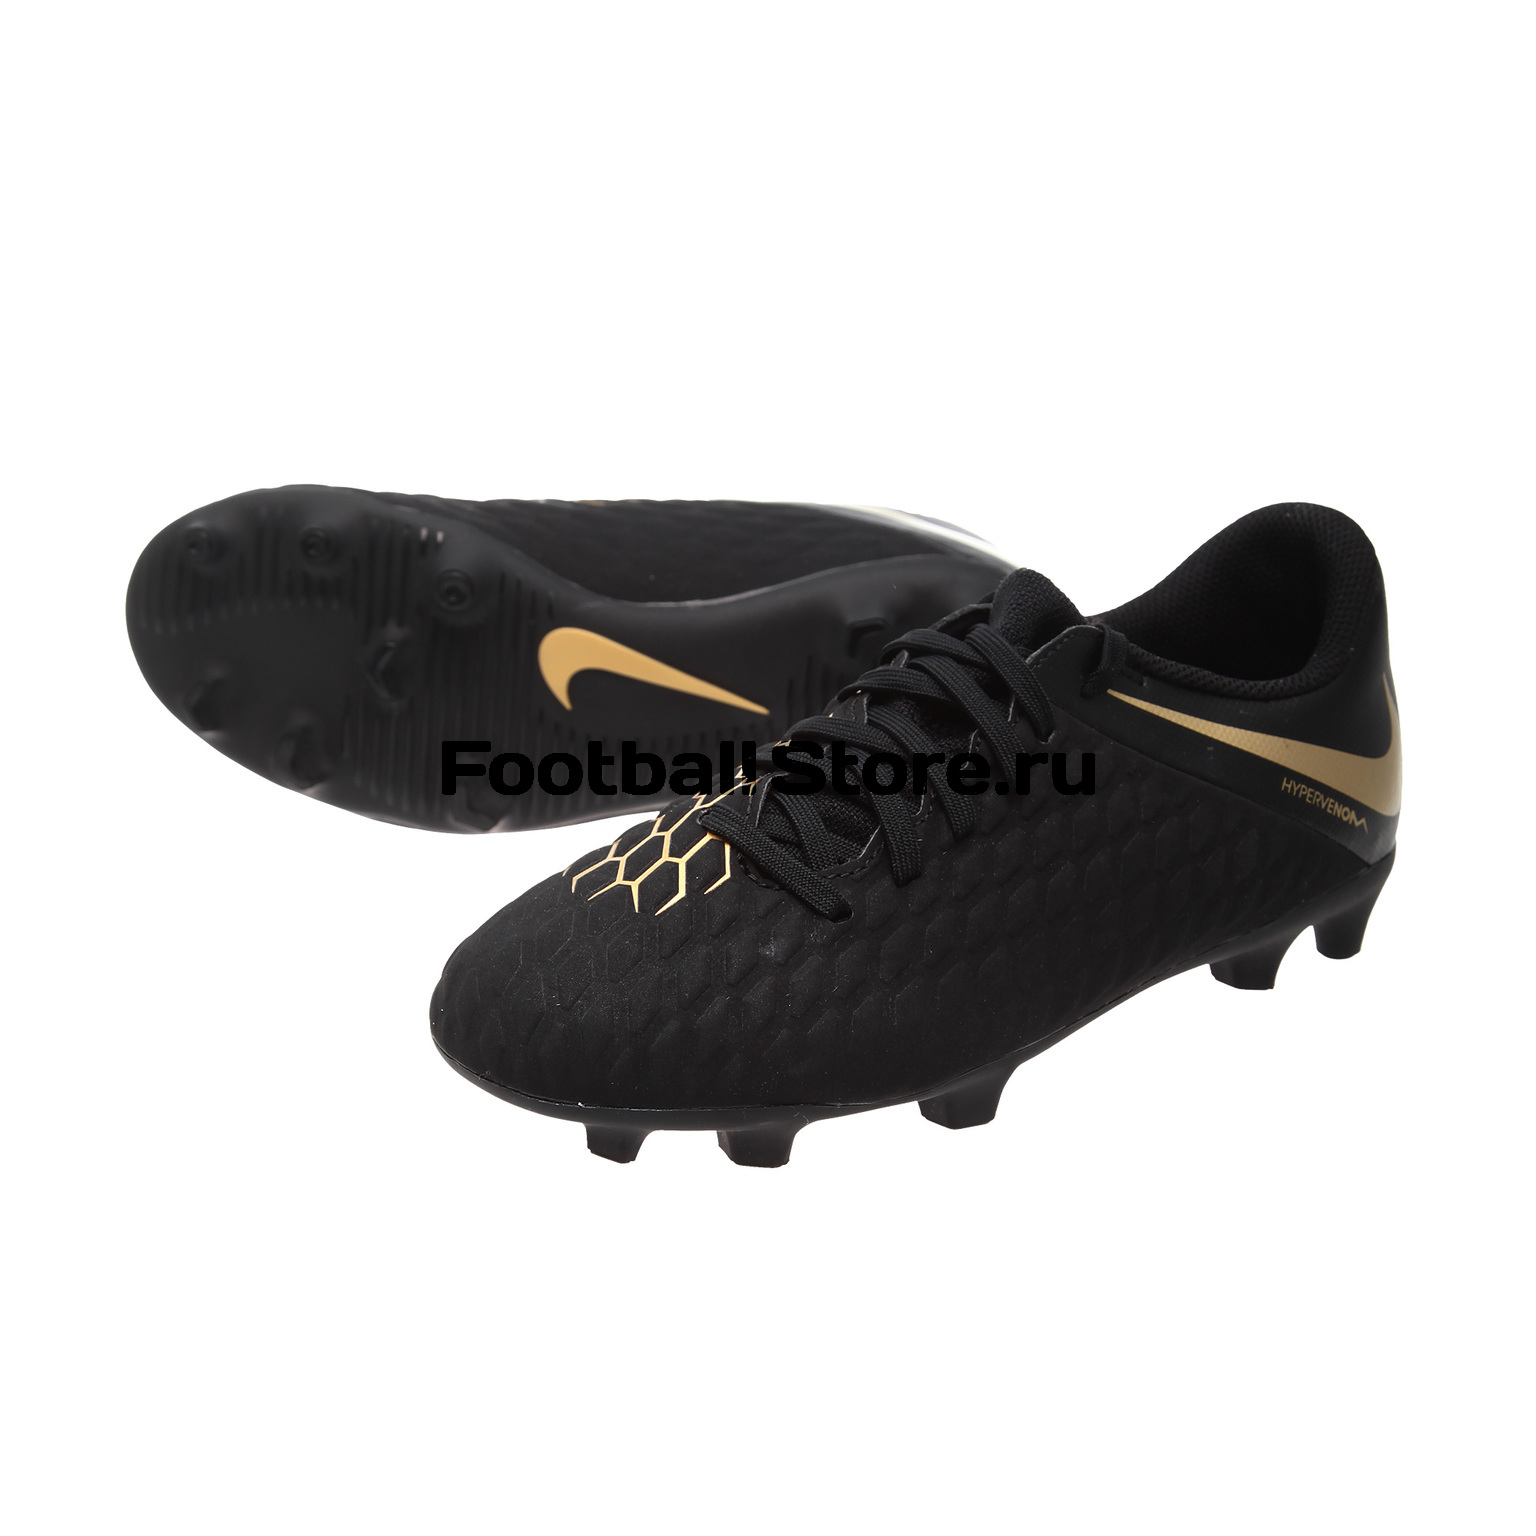 Бутсы Nike JR Hypervenom 3 Club FG AJ4146-090 бутсы nike superfly academy gs cr7 jr fg mg aj3111 390